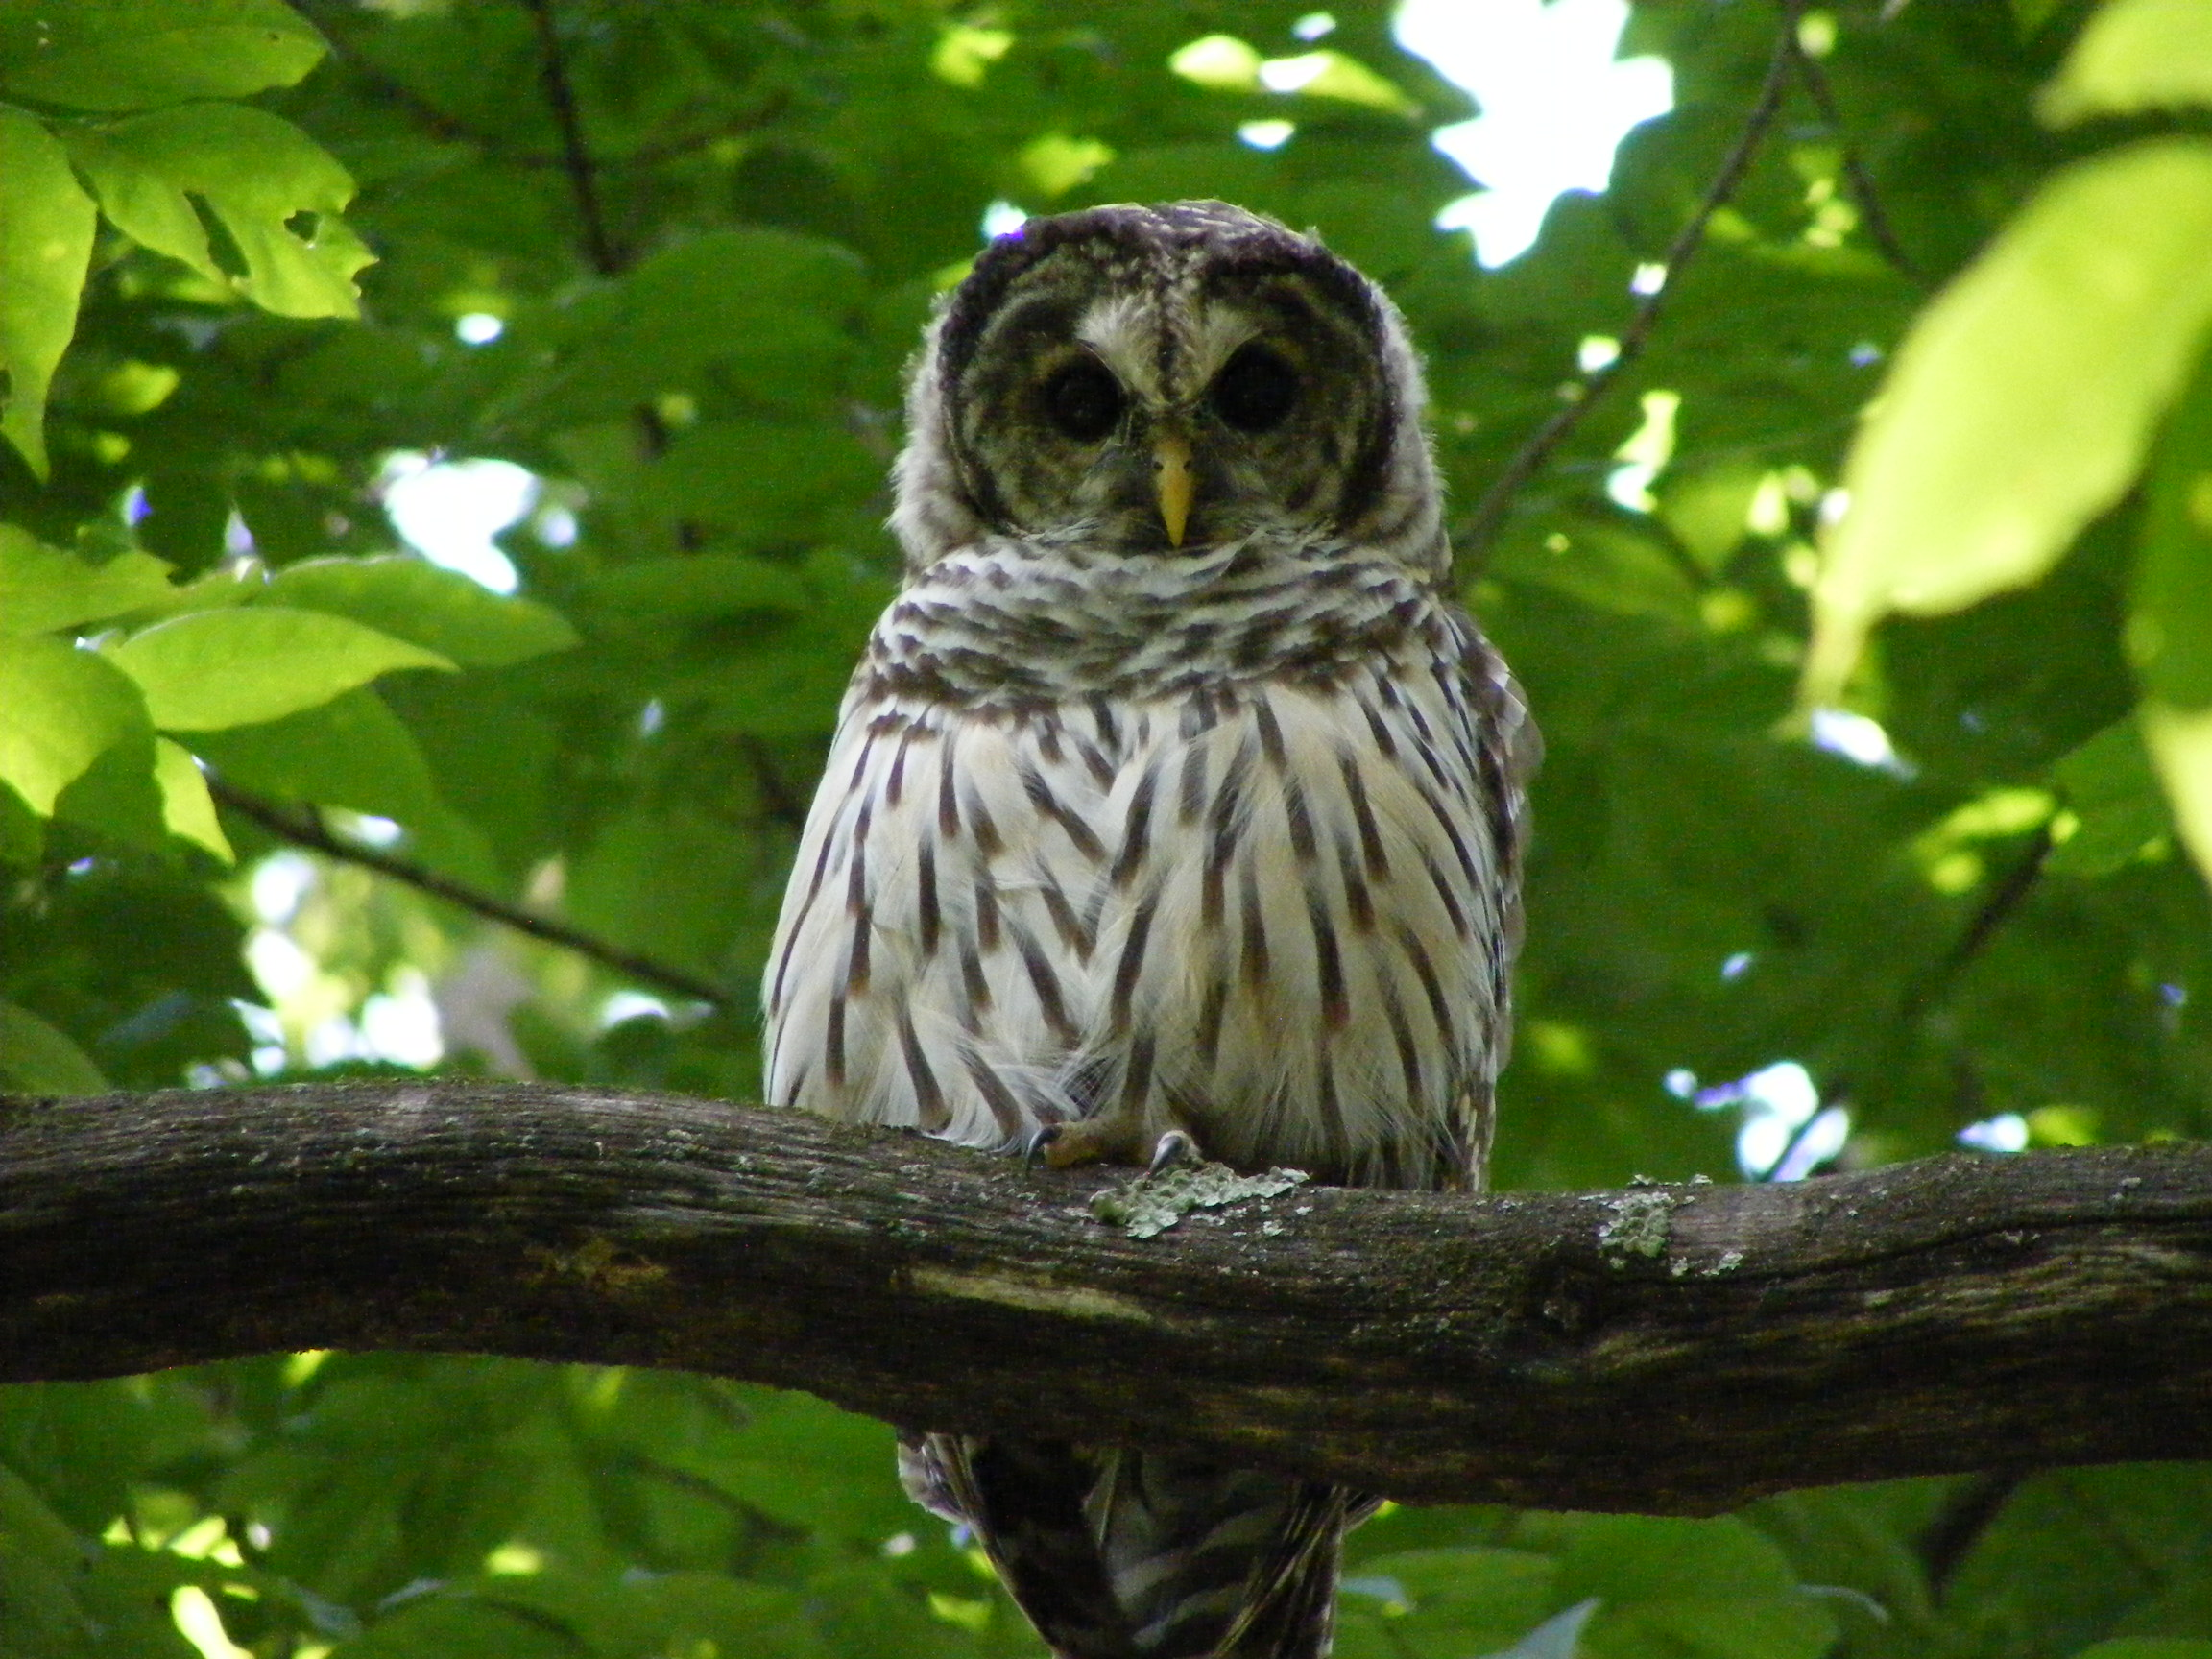 Barred owl photo by Harman Conrad